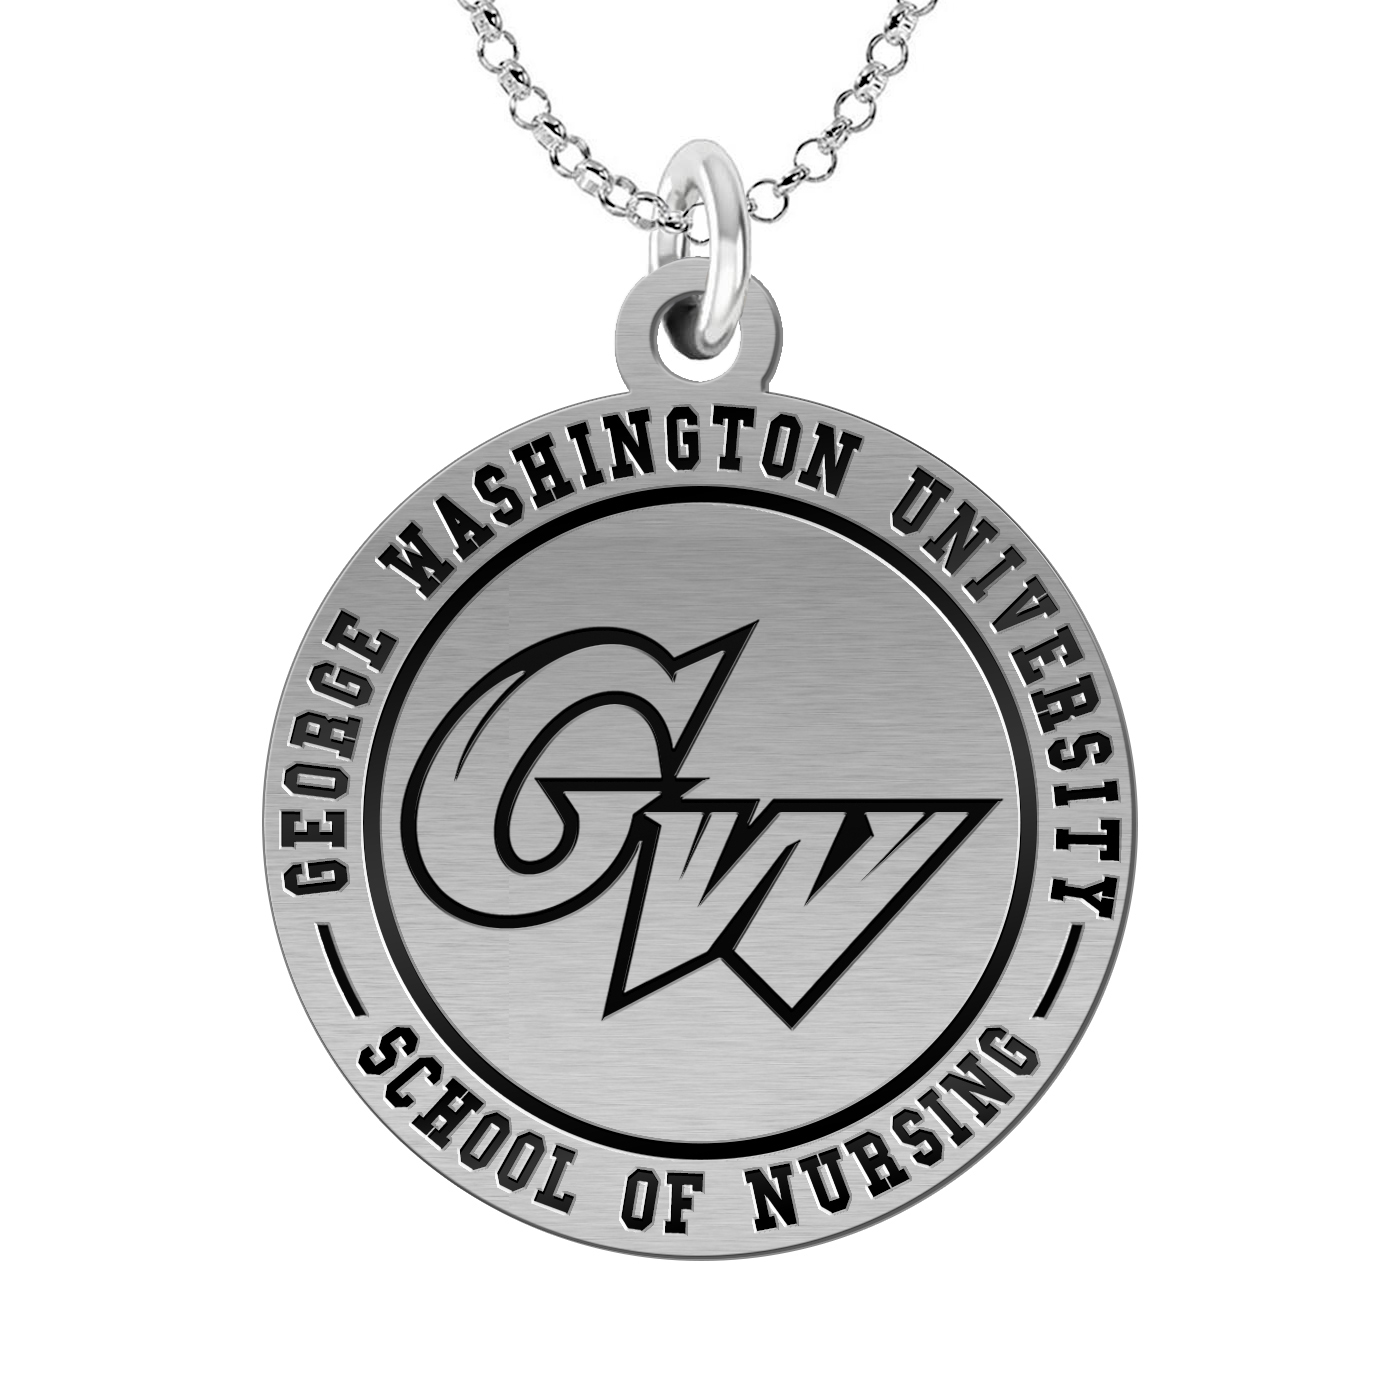 George Washington University Gw School Of Nursing Charm. Neurology Nurse Practitioner. I Hate Teaching College Decatur Funeral Homes. Workplace Sexual Harassment Dr Nicole Noyes. Teacher Resources Writing Redding Ca Colleges. Cake Decorating Classes Wichita Ks. Ceiling Fan Alternative Ping Monitor Software. Best Hotel Reward Credit Card. Motorcycle Insurance Va Mba In Music Business